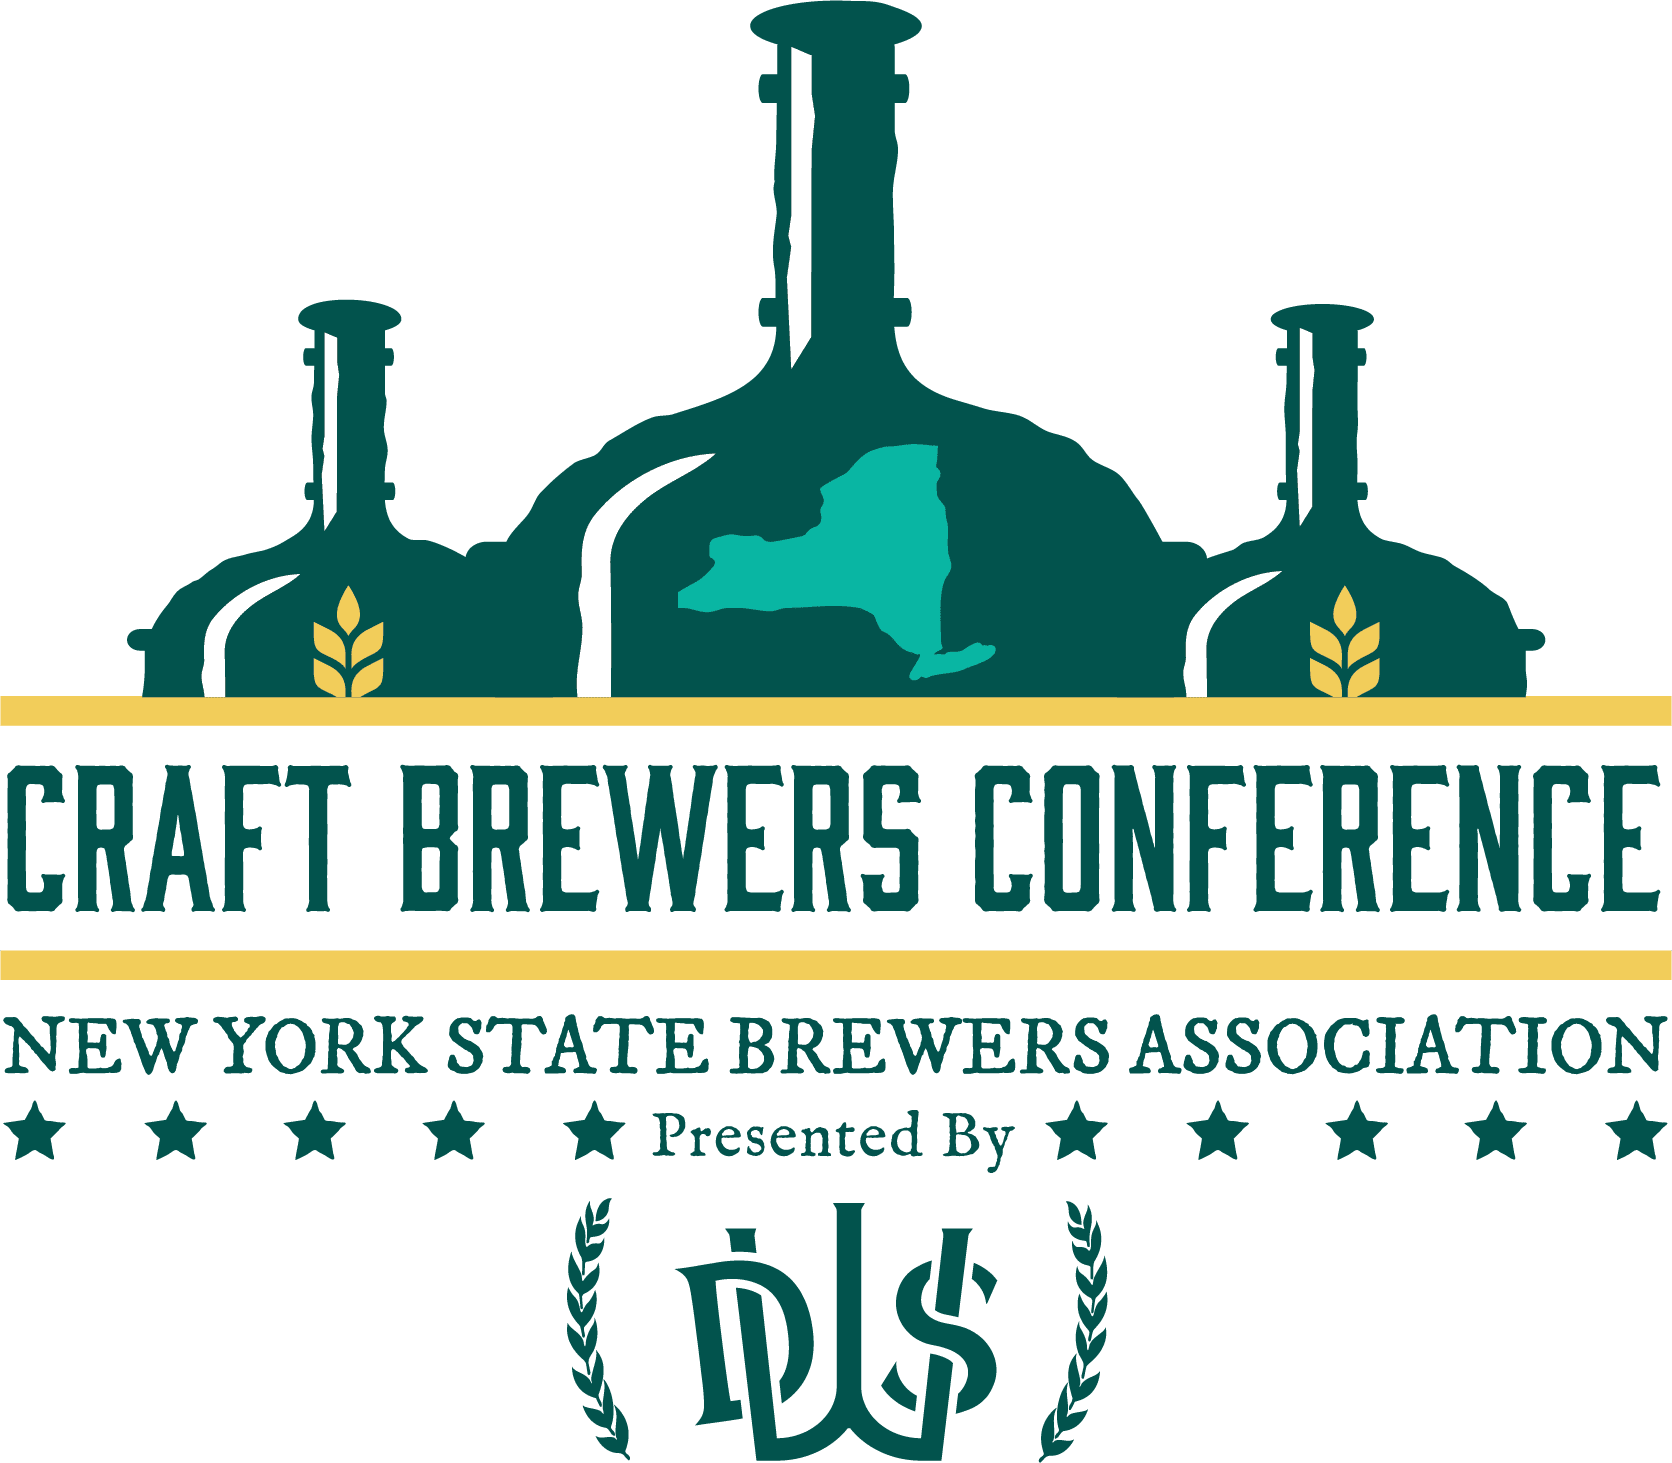 new york craft brewers conference